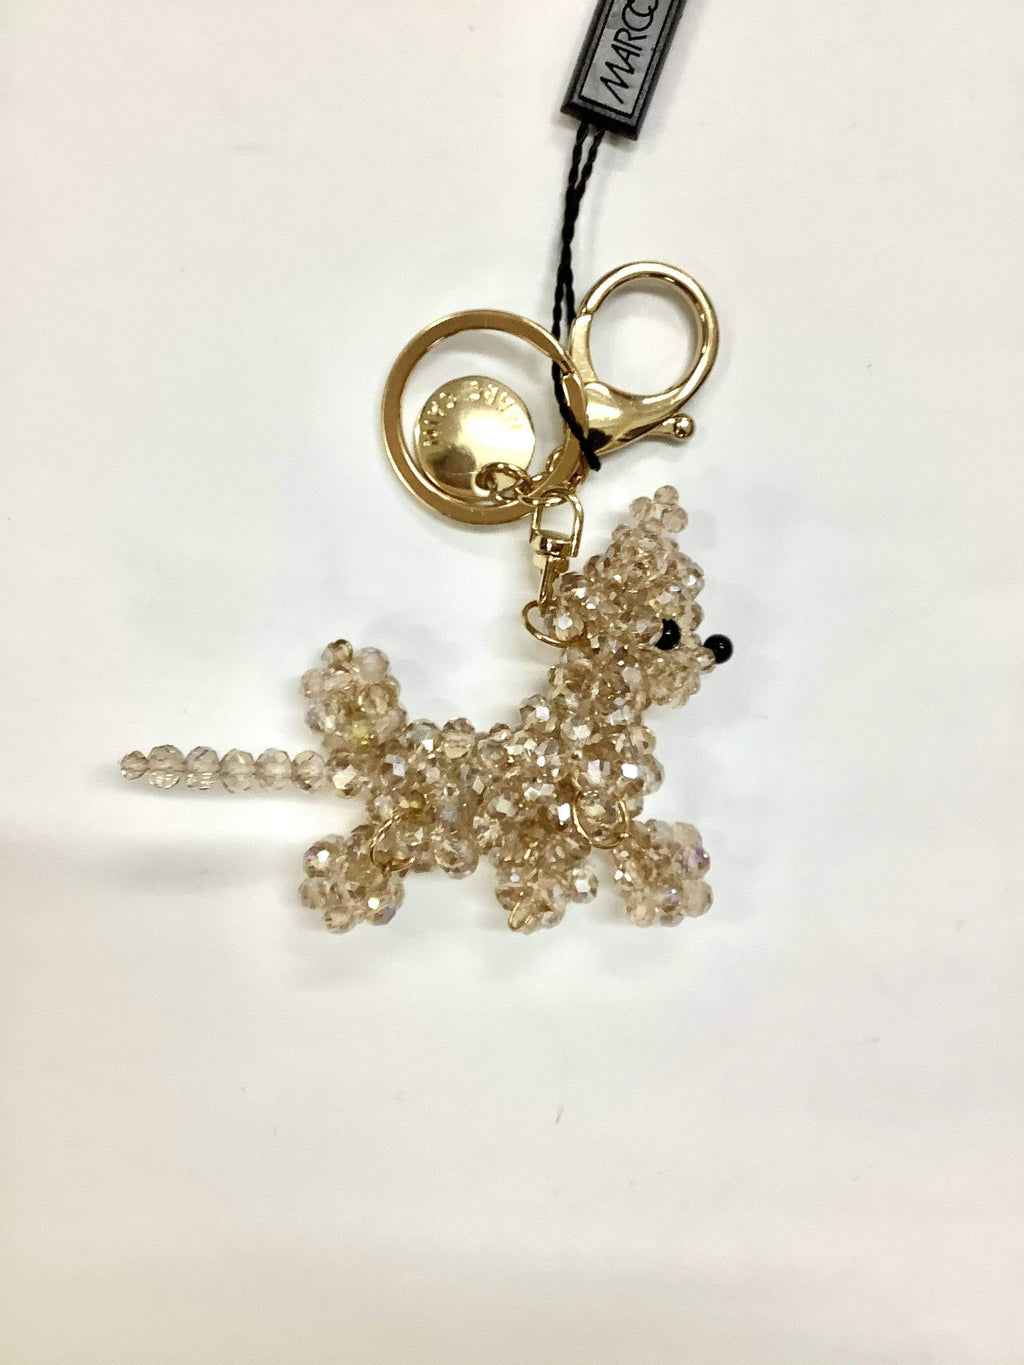 Marc Cain Accessories One Size Marc Cain Crystal Beaded Key Ring/Bag Charm KC G7.01 Z04 izzi-of-baslow